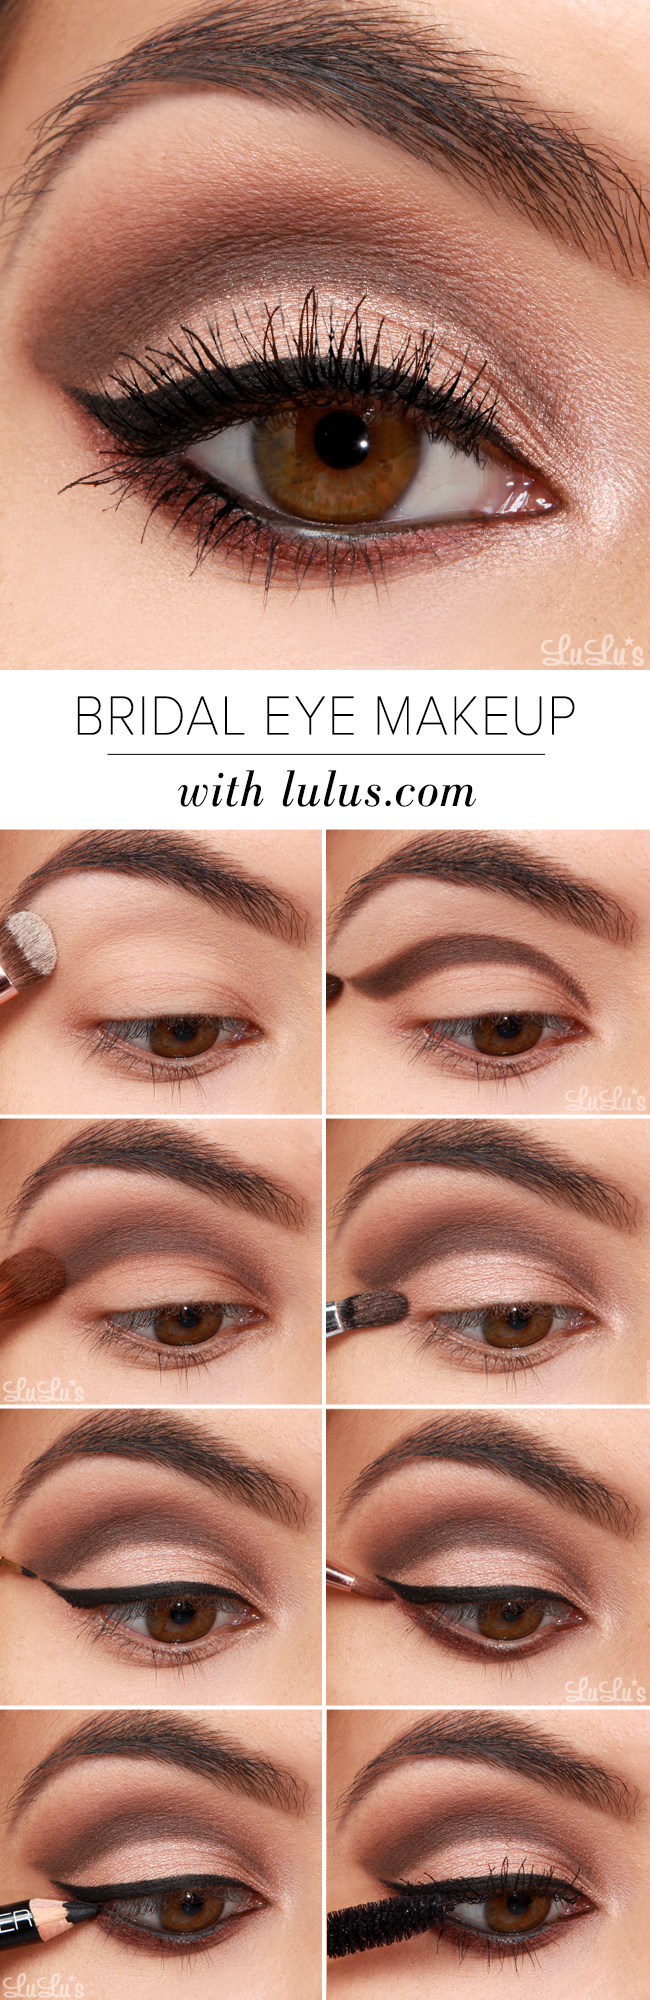 Lulus how to bridal eye makeup tutorial lulus fashion blog lulus how to bridal eye makeup tutorial at lulus baditri Images